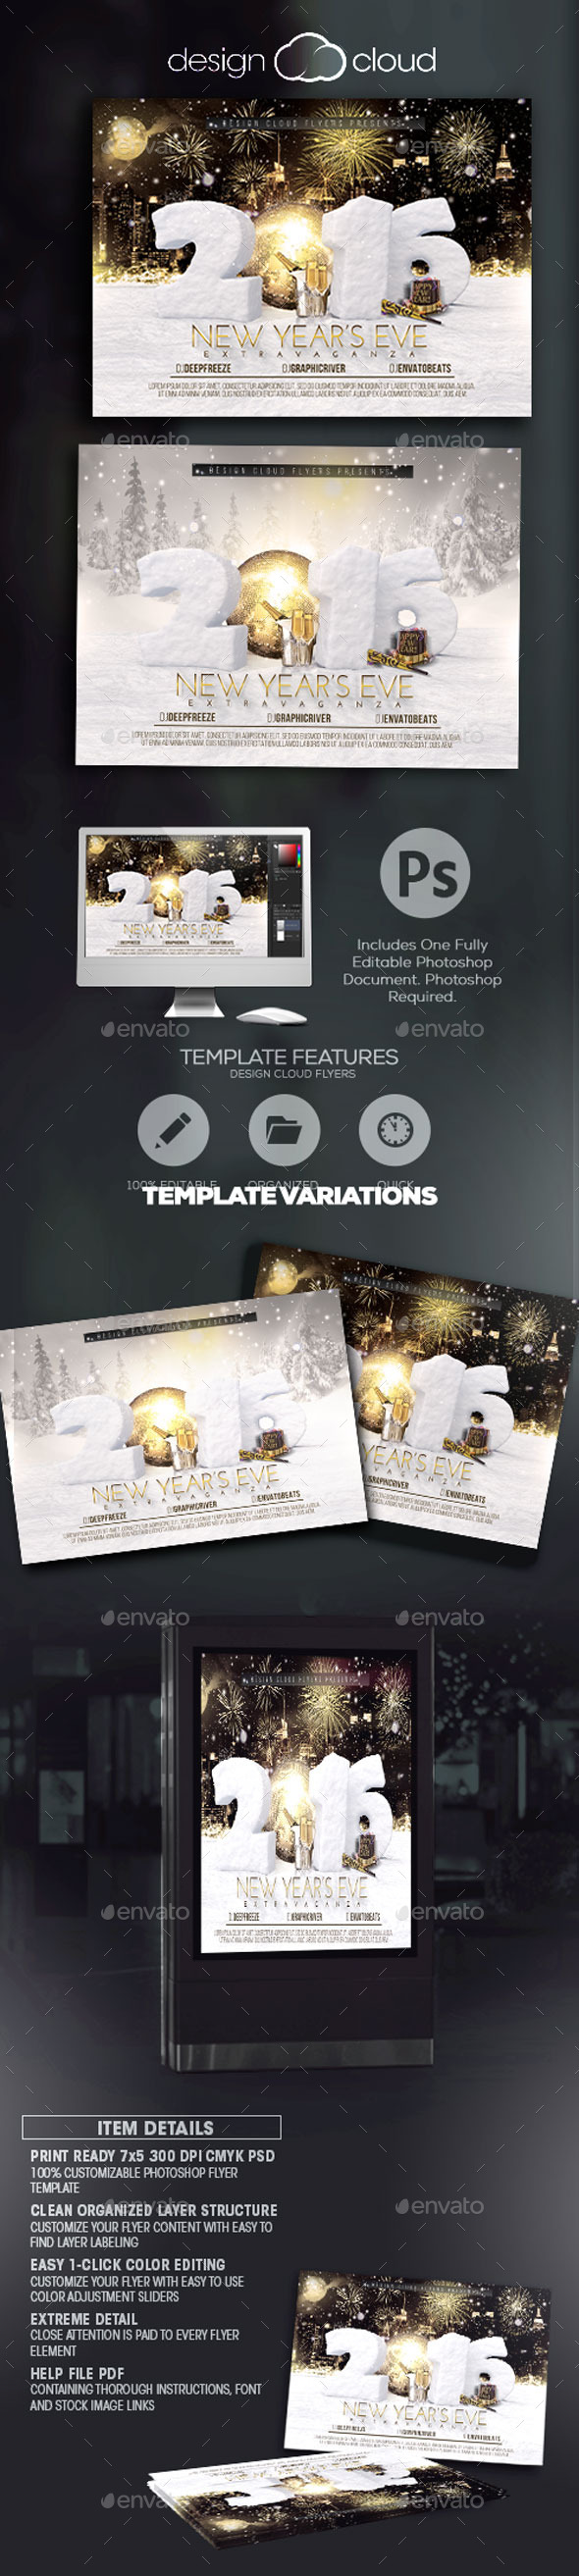 New Year's Eve Extravaganza Flyer Template - Holidays Events